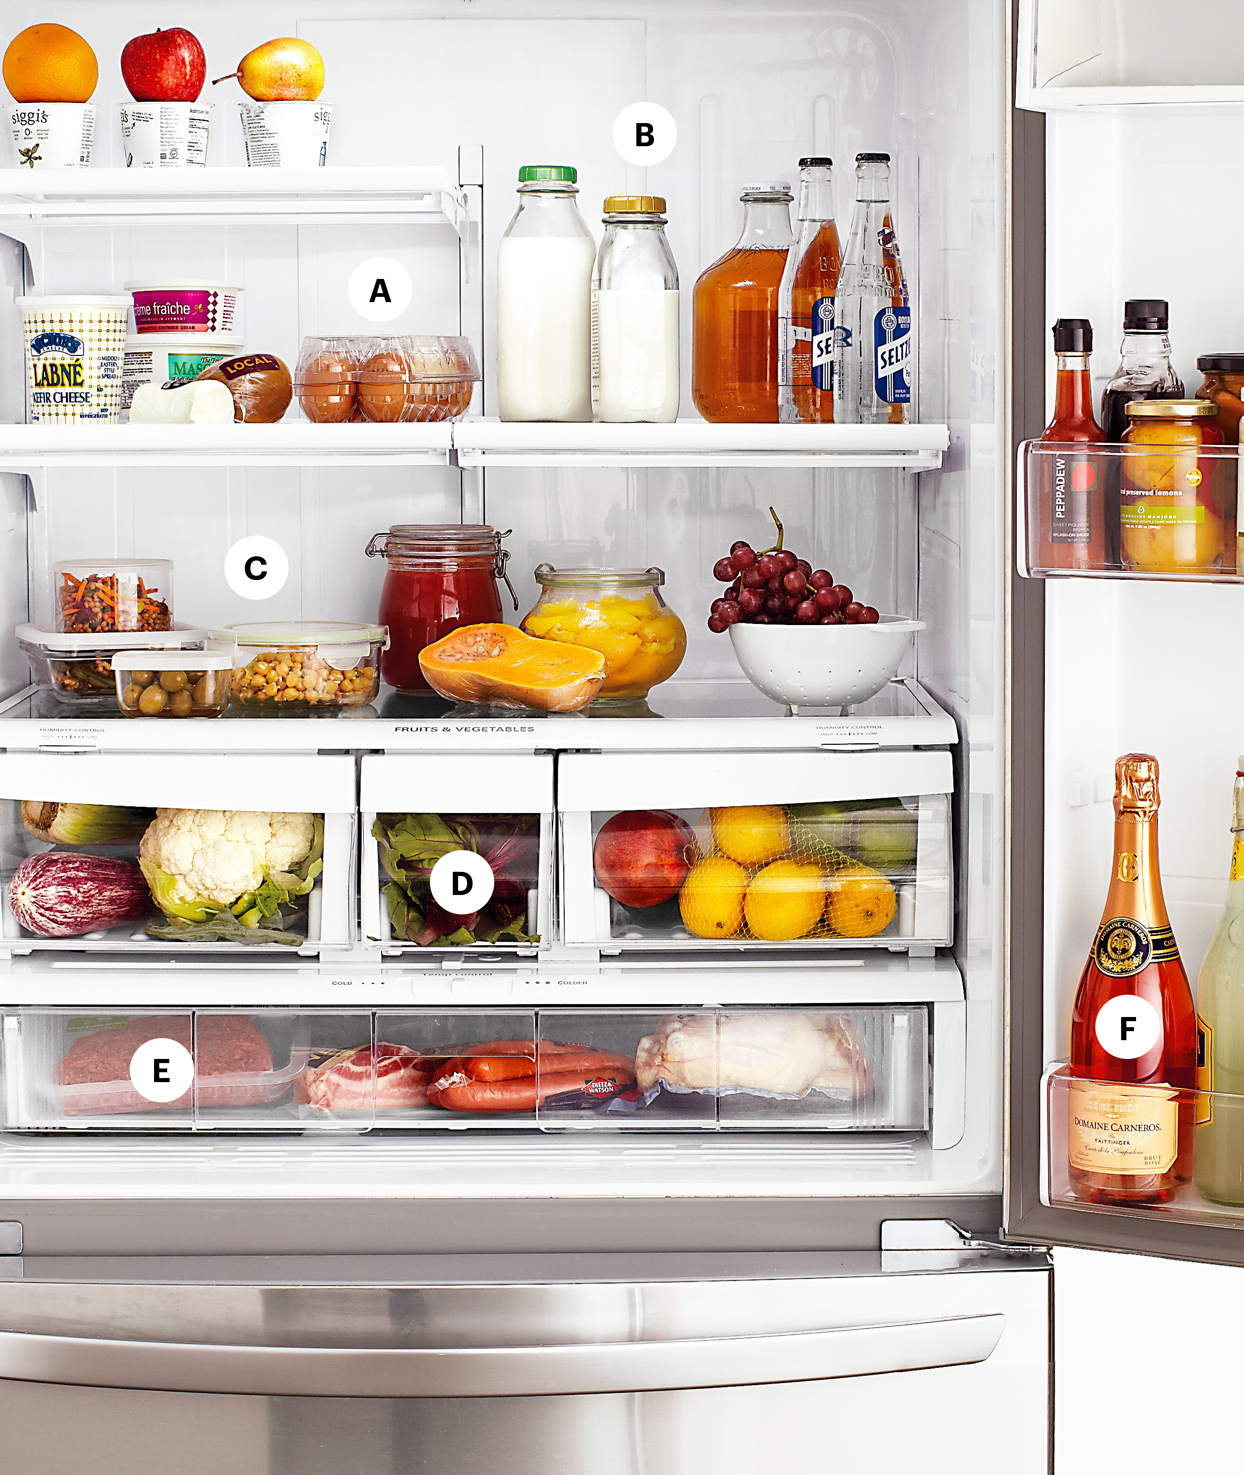 fridge filled with various foods and drinks in an organized manor